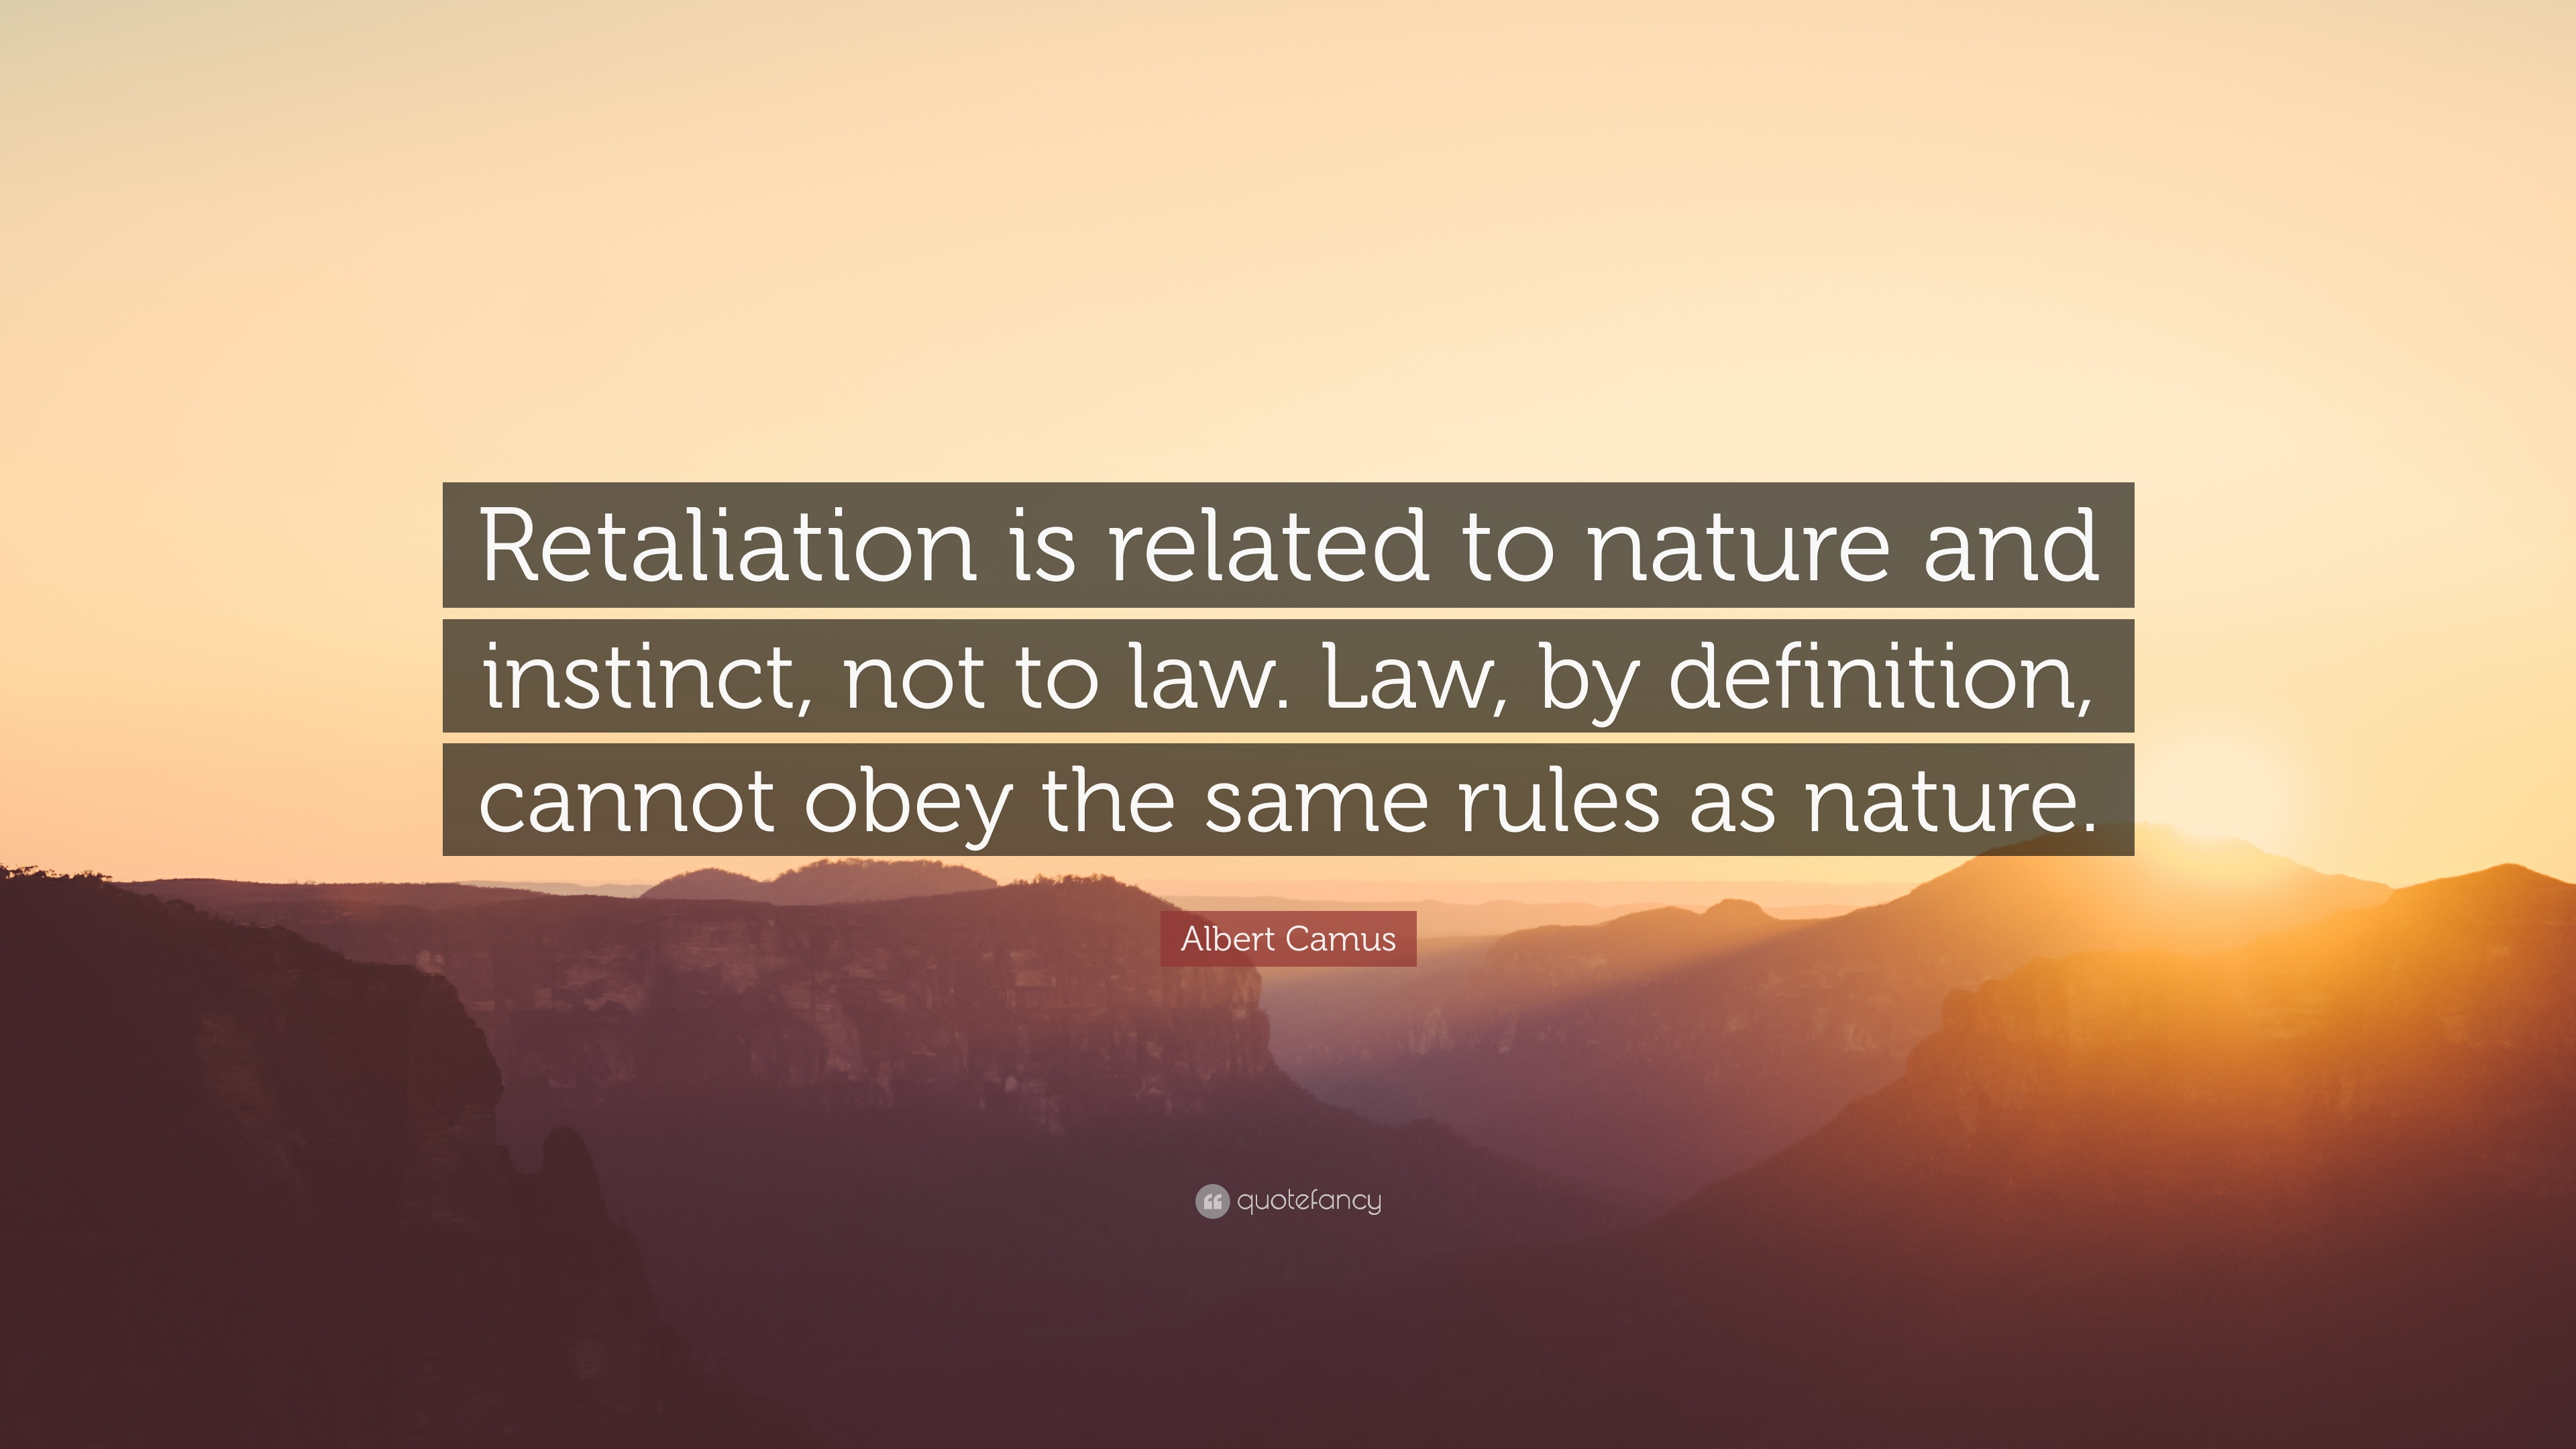 Laws Of Life And Nature Quotes, Famous Laws Of Life And Nature Quotes,  Popular Laws Of Life And Nature Quotes